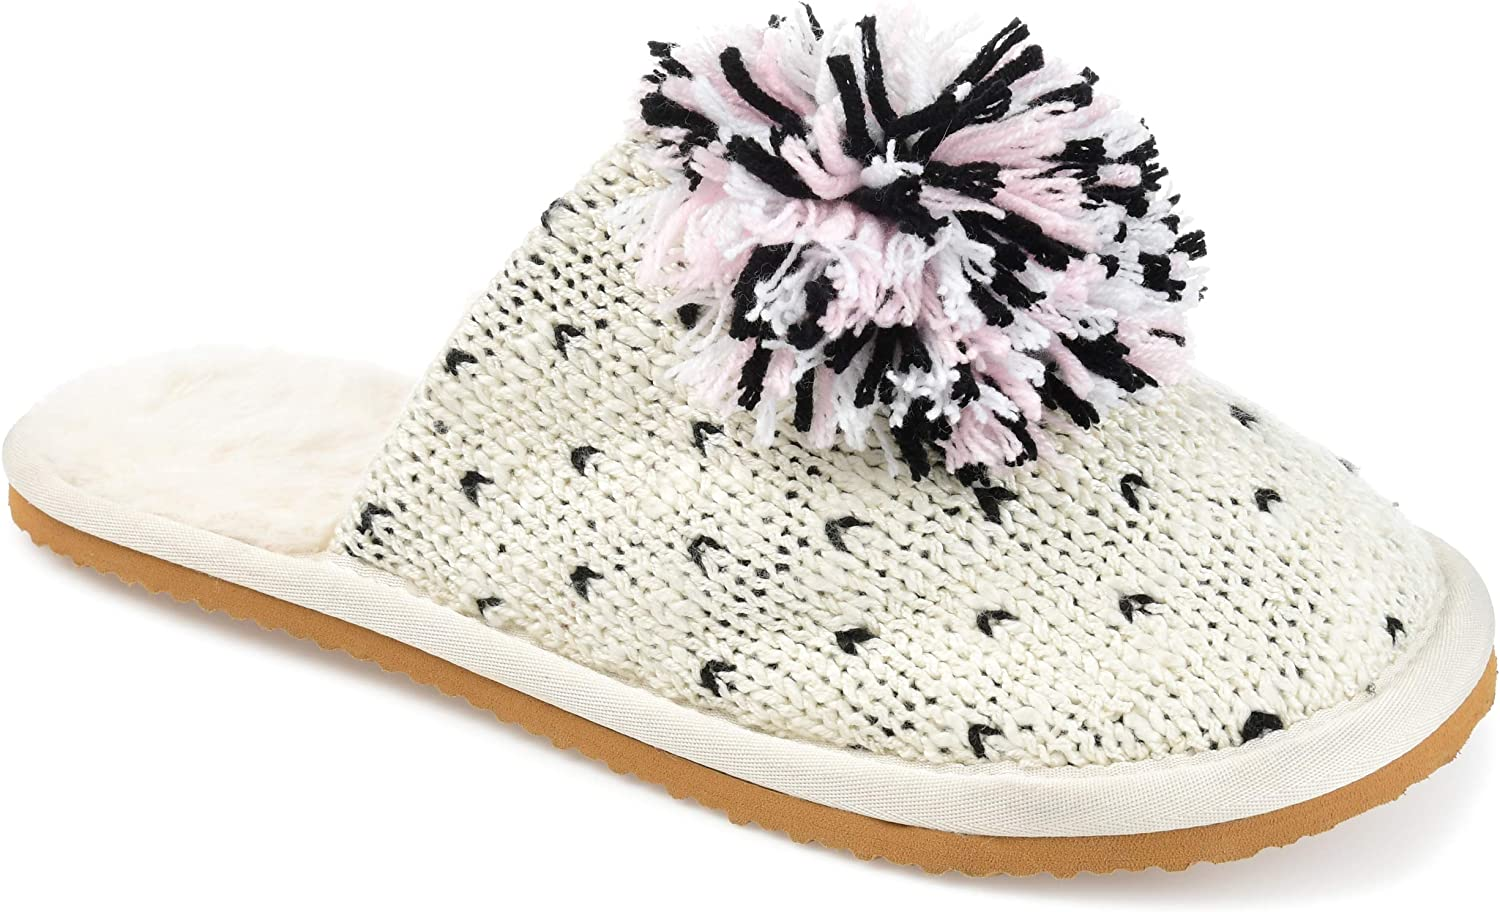 Journee Collection 2021 Oakland Mall new Slippers Women's